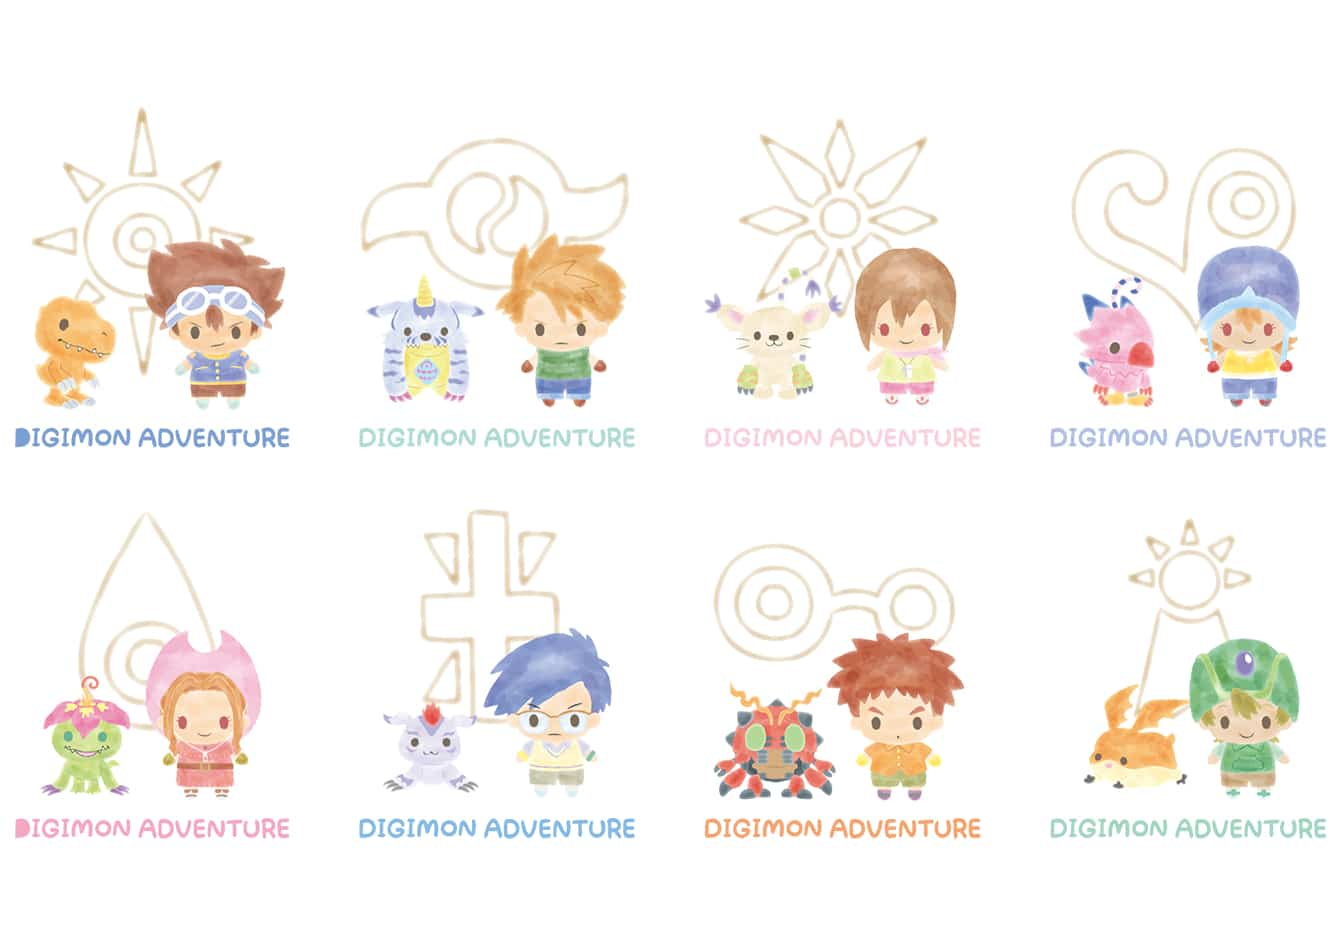 The original Digimon characters get a cute Sanrio makeover 16